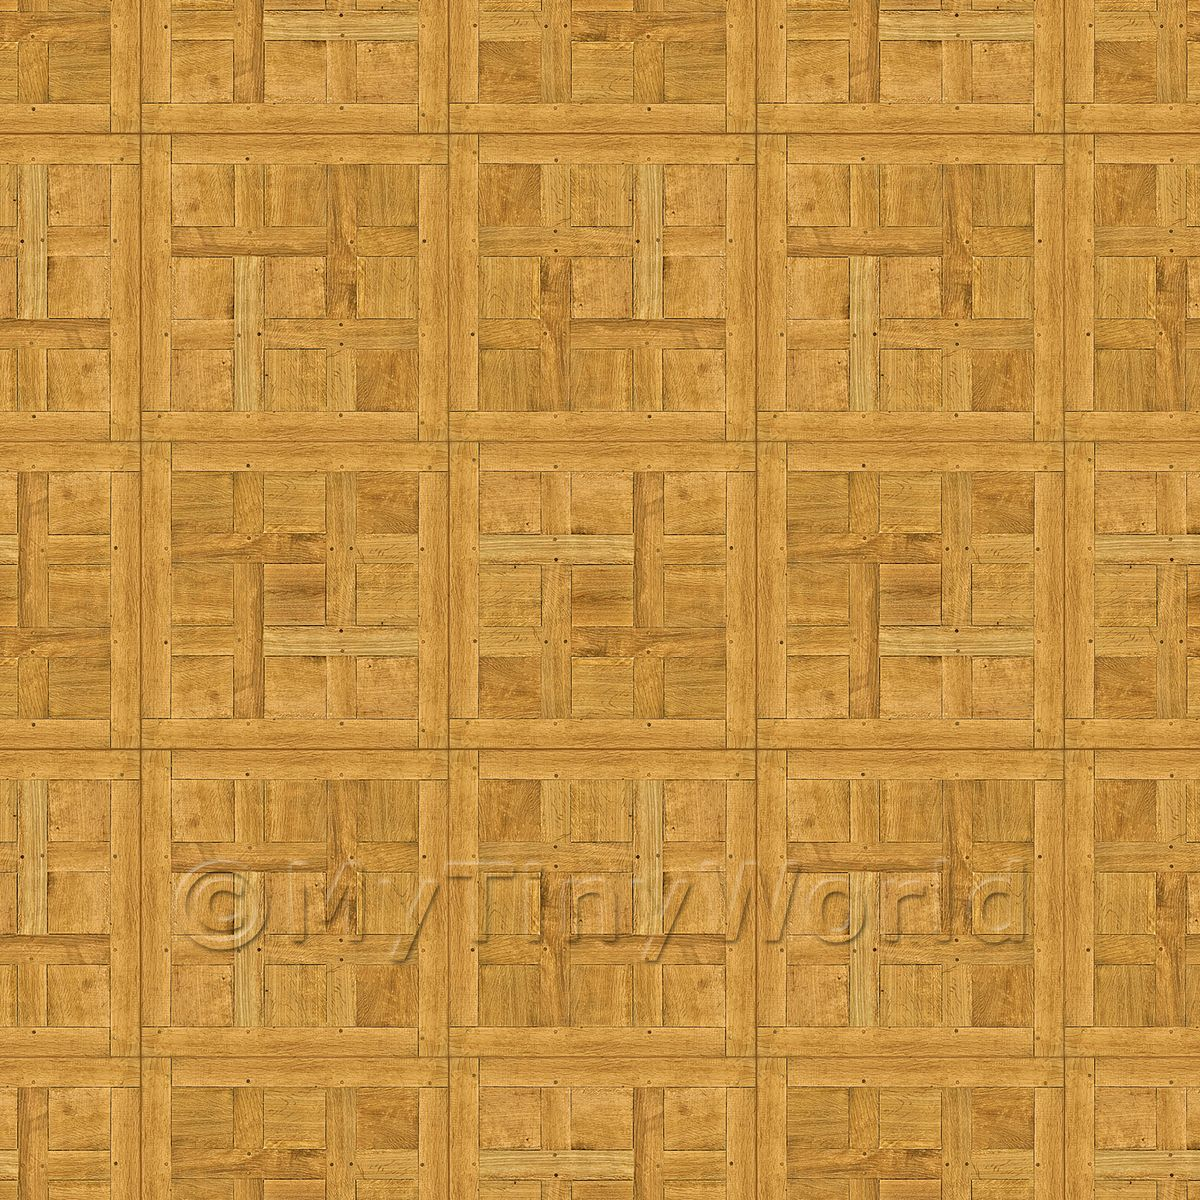 Dolls House Chantilly Small Panel Parquet Wood Effect Flooring